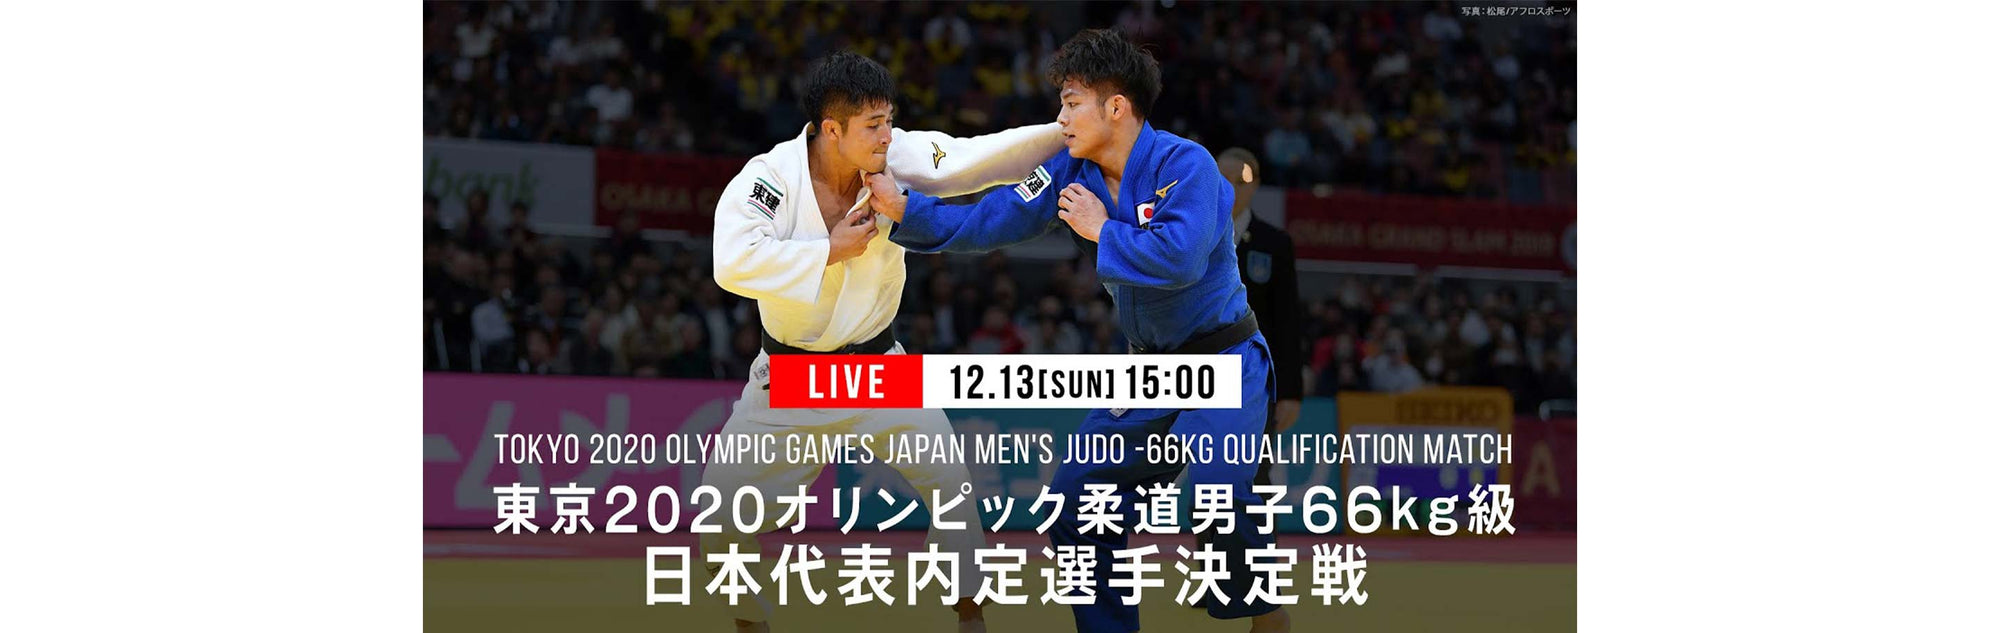 Maruyama & Abe Fight For The Olympic Spot At 66kg For Japan!